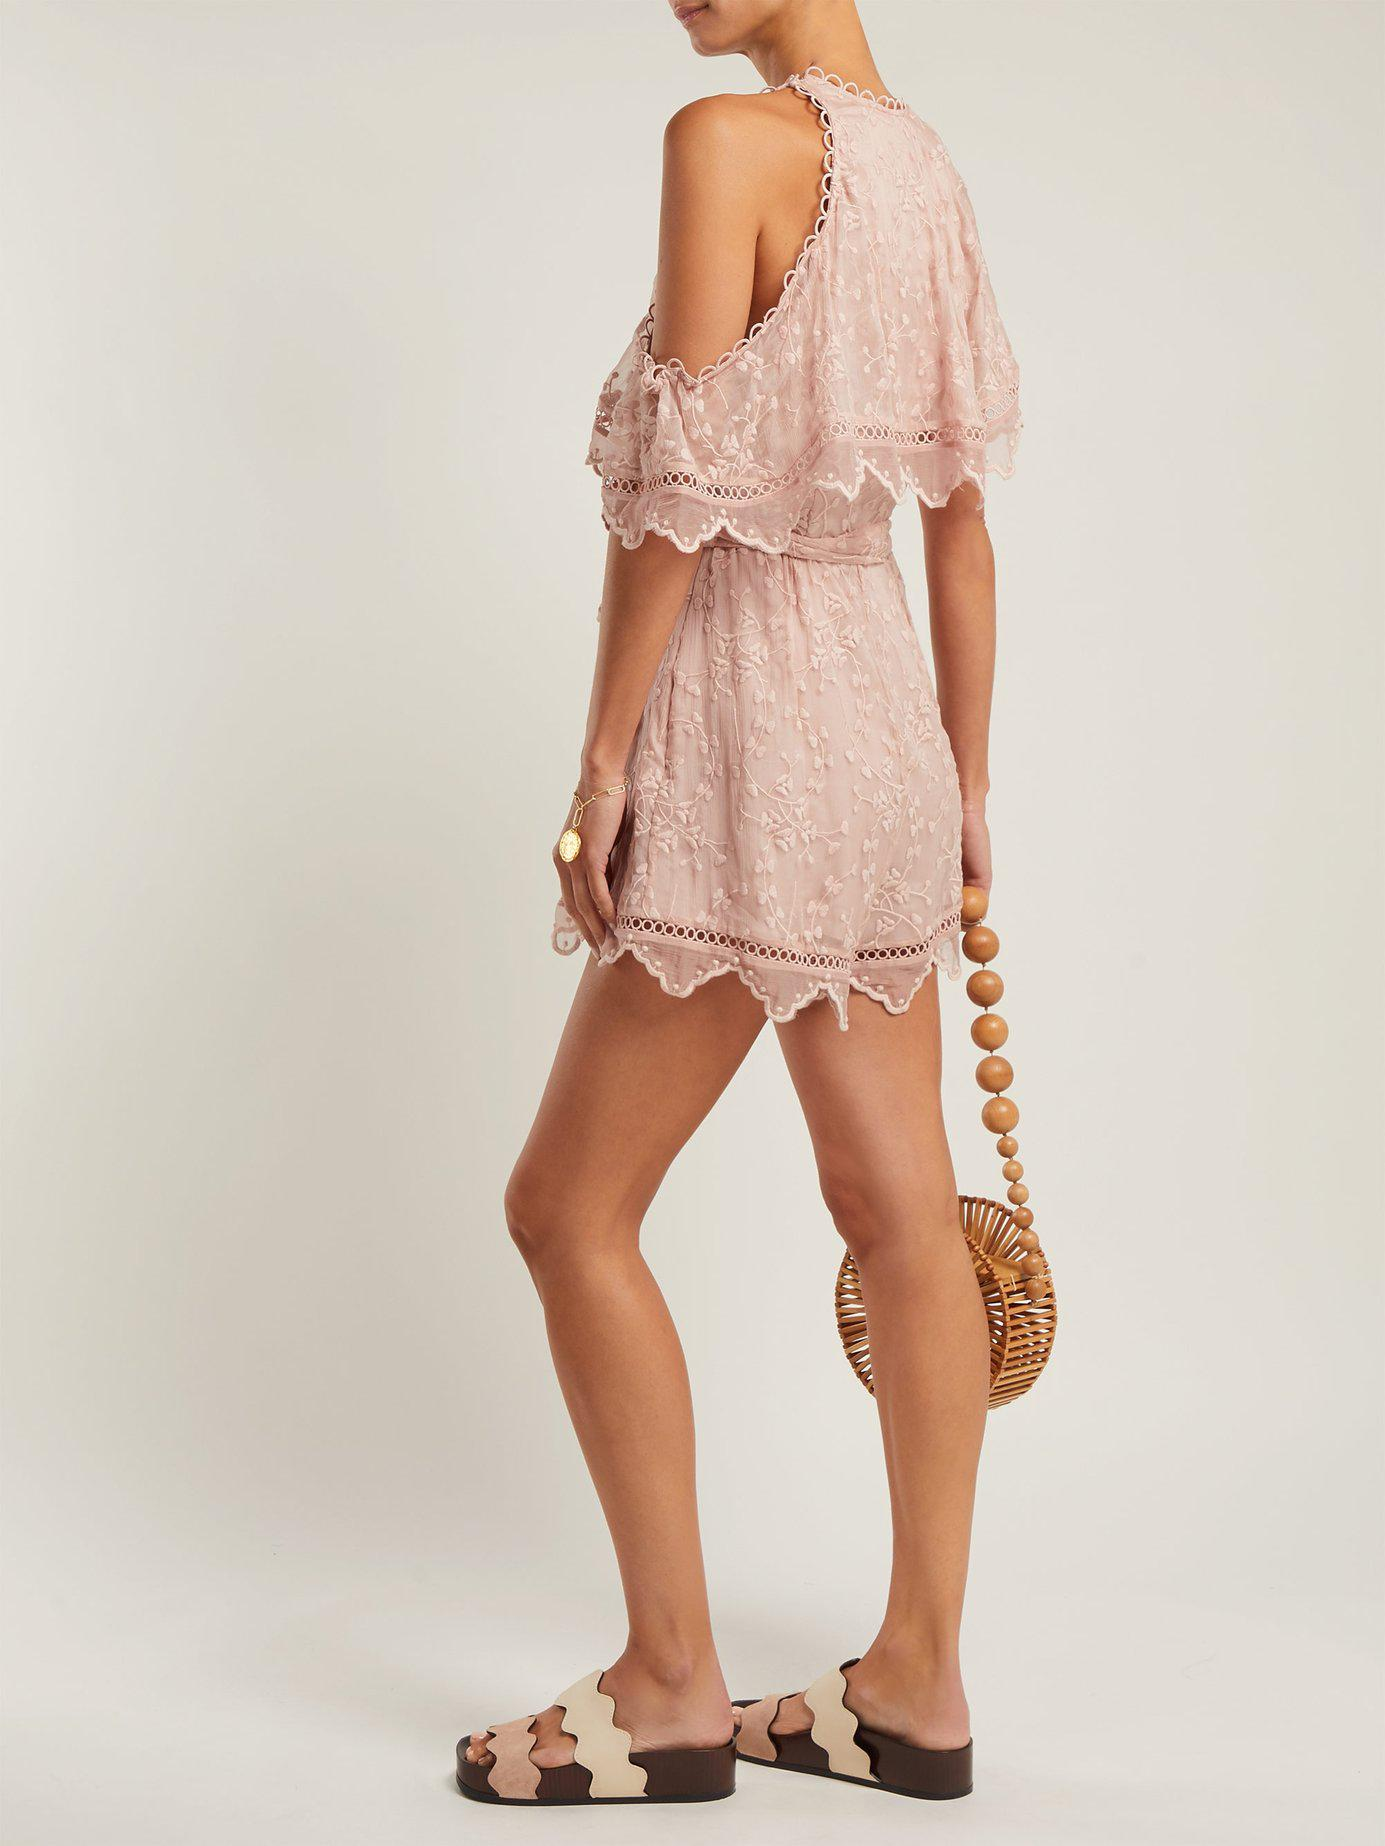 c31e4c5dc29 Zimmermann Castile Embroidered Silk Chiffon Playsuit in Pink - Lyst